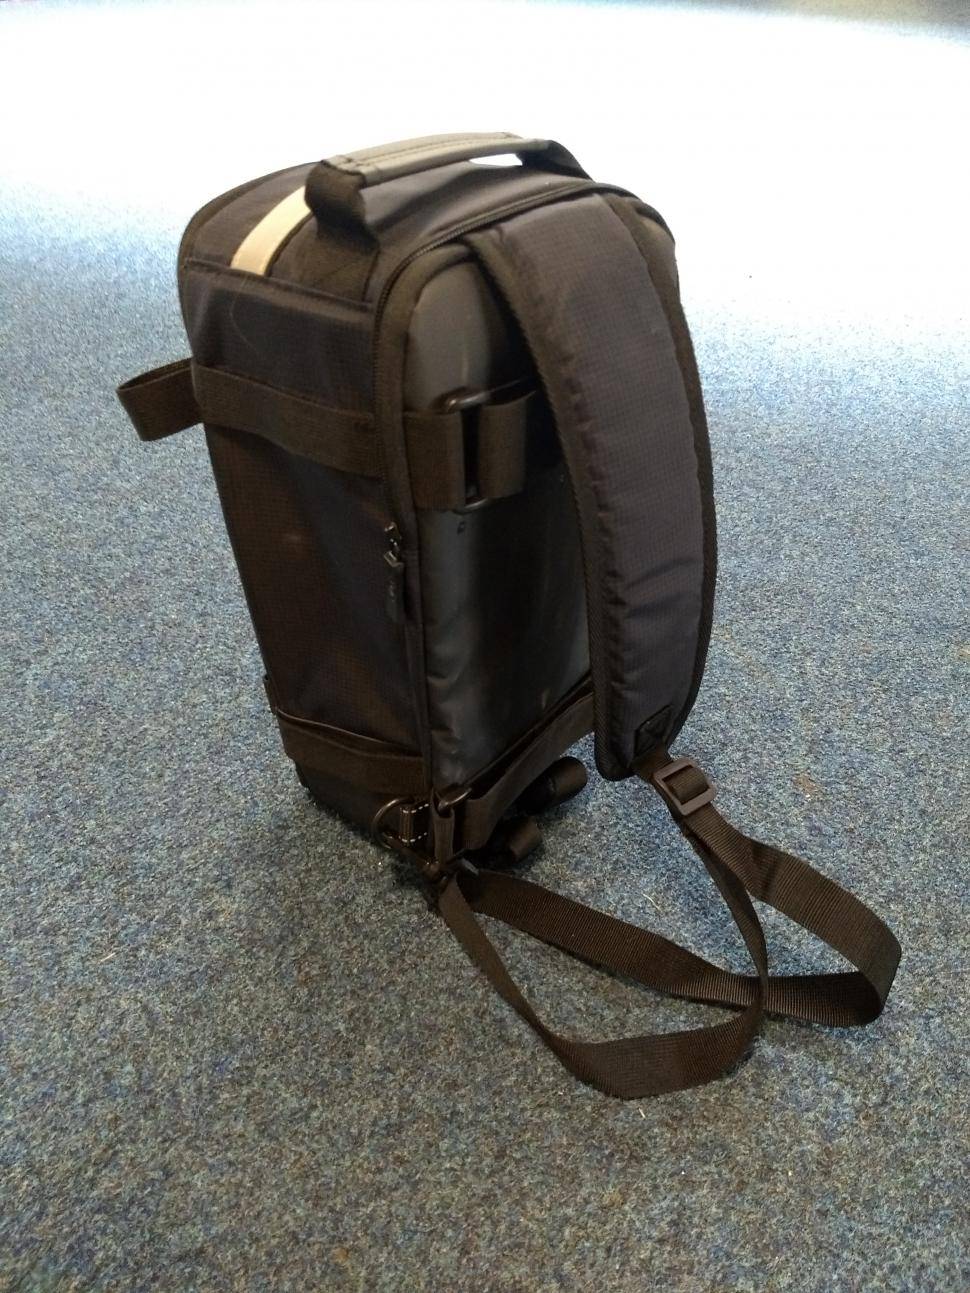 BTR bag with strap attached.jpg